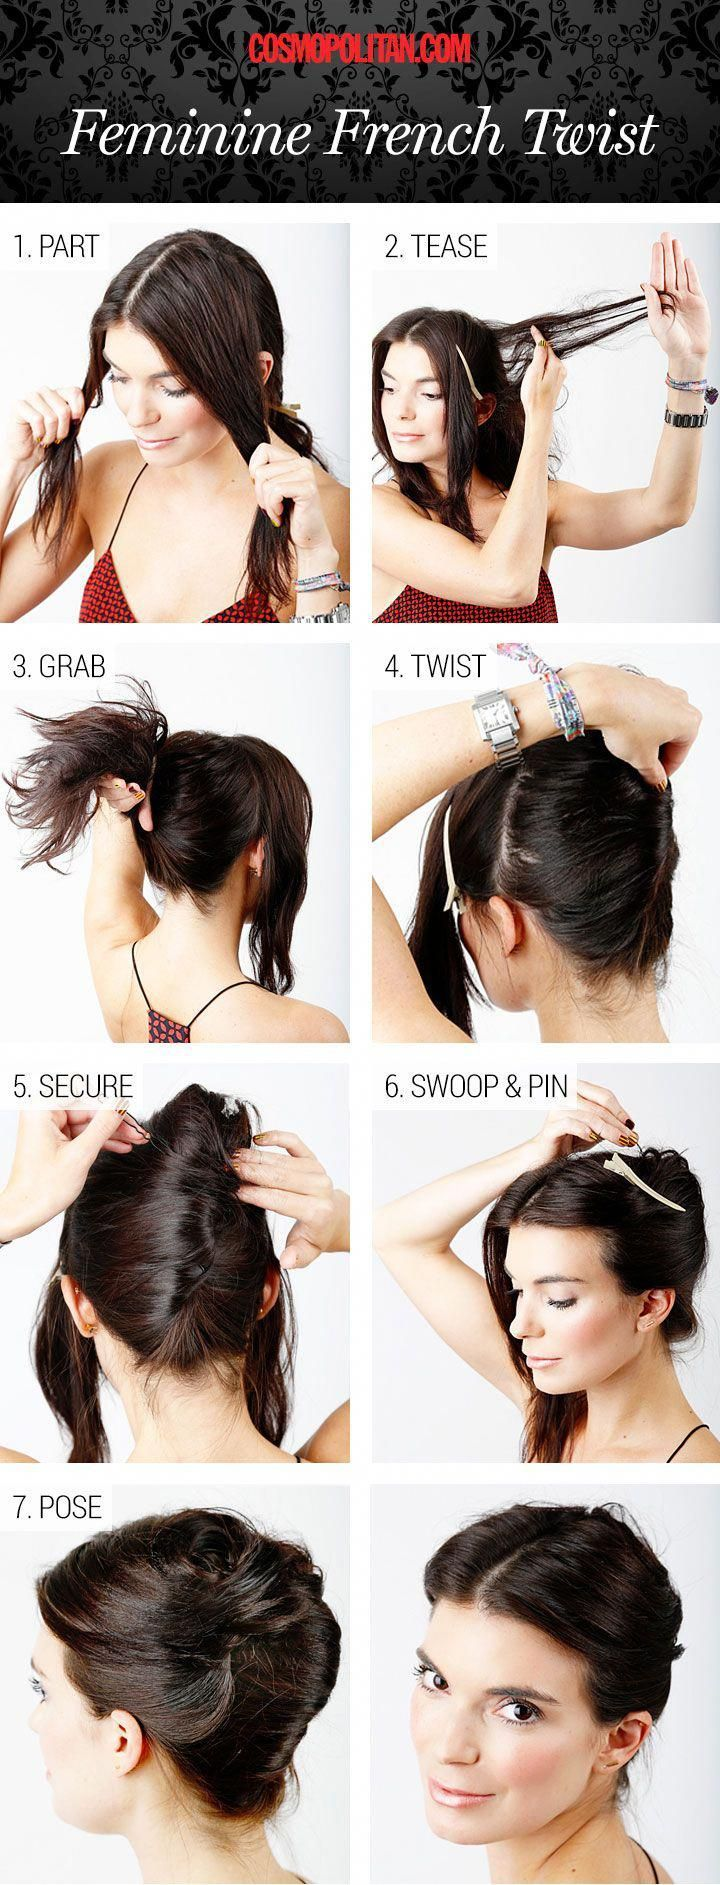 Modern Hairstyles For Long Hair | Female Long Hair | Really Easy Updos For Mediu…